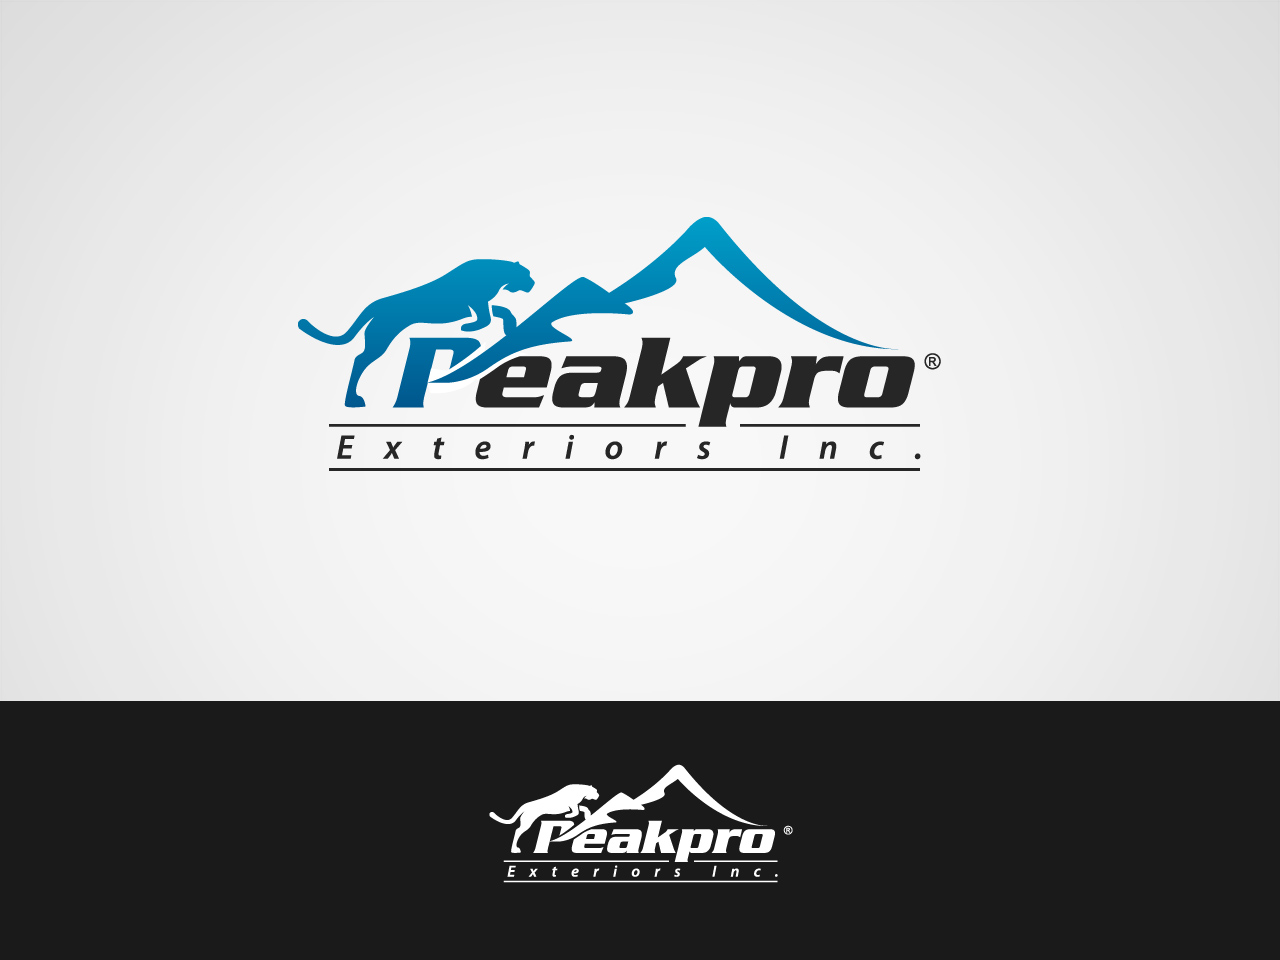 Logo Design by jpbituin - Entry No. 88 in the Logo Design Contest Captivating Logo Design for Peakpro Exteriors Inc..